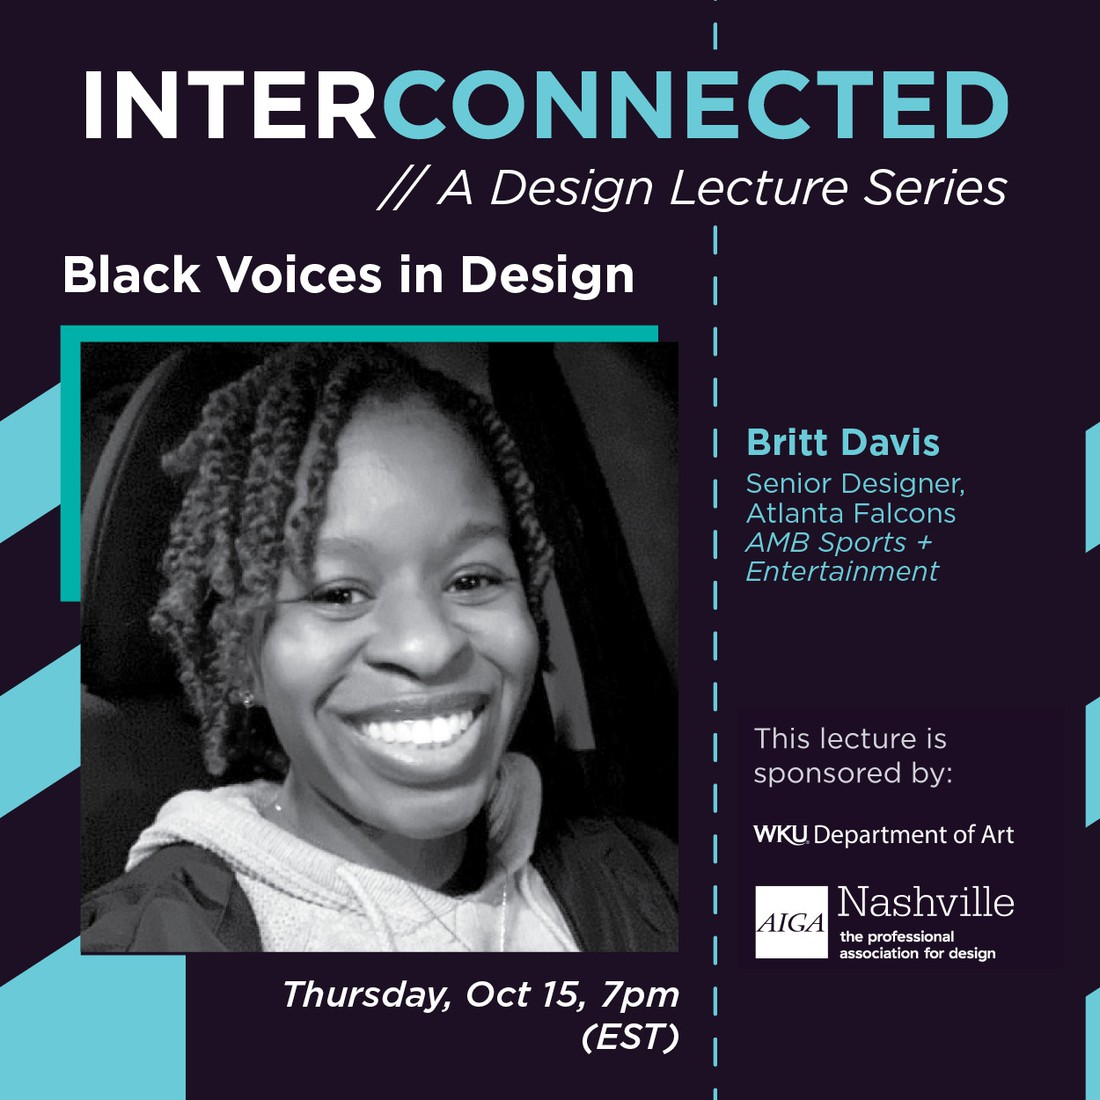 Britt Davis Interconnected Lecture